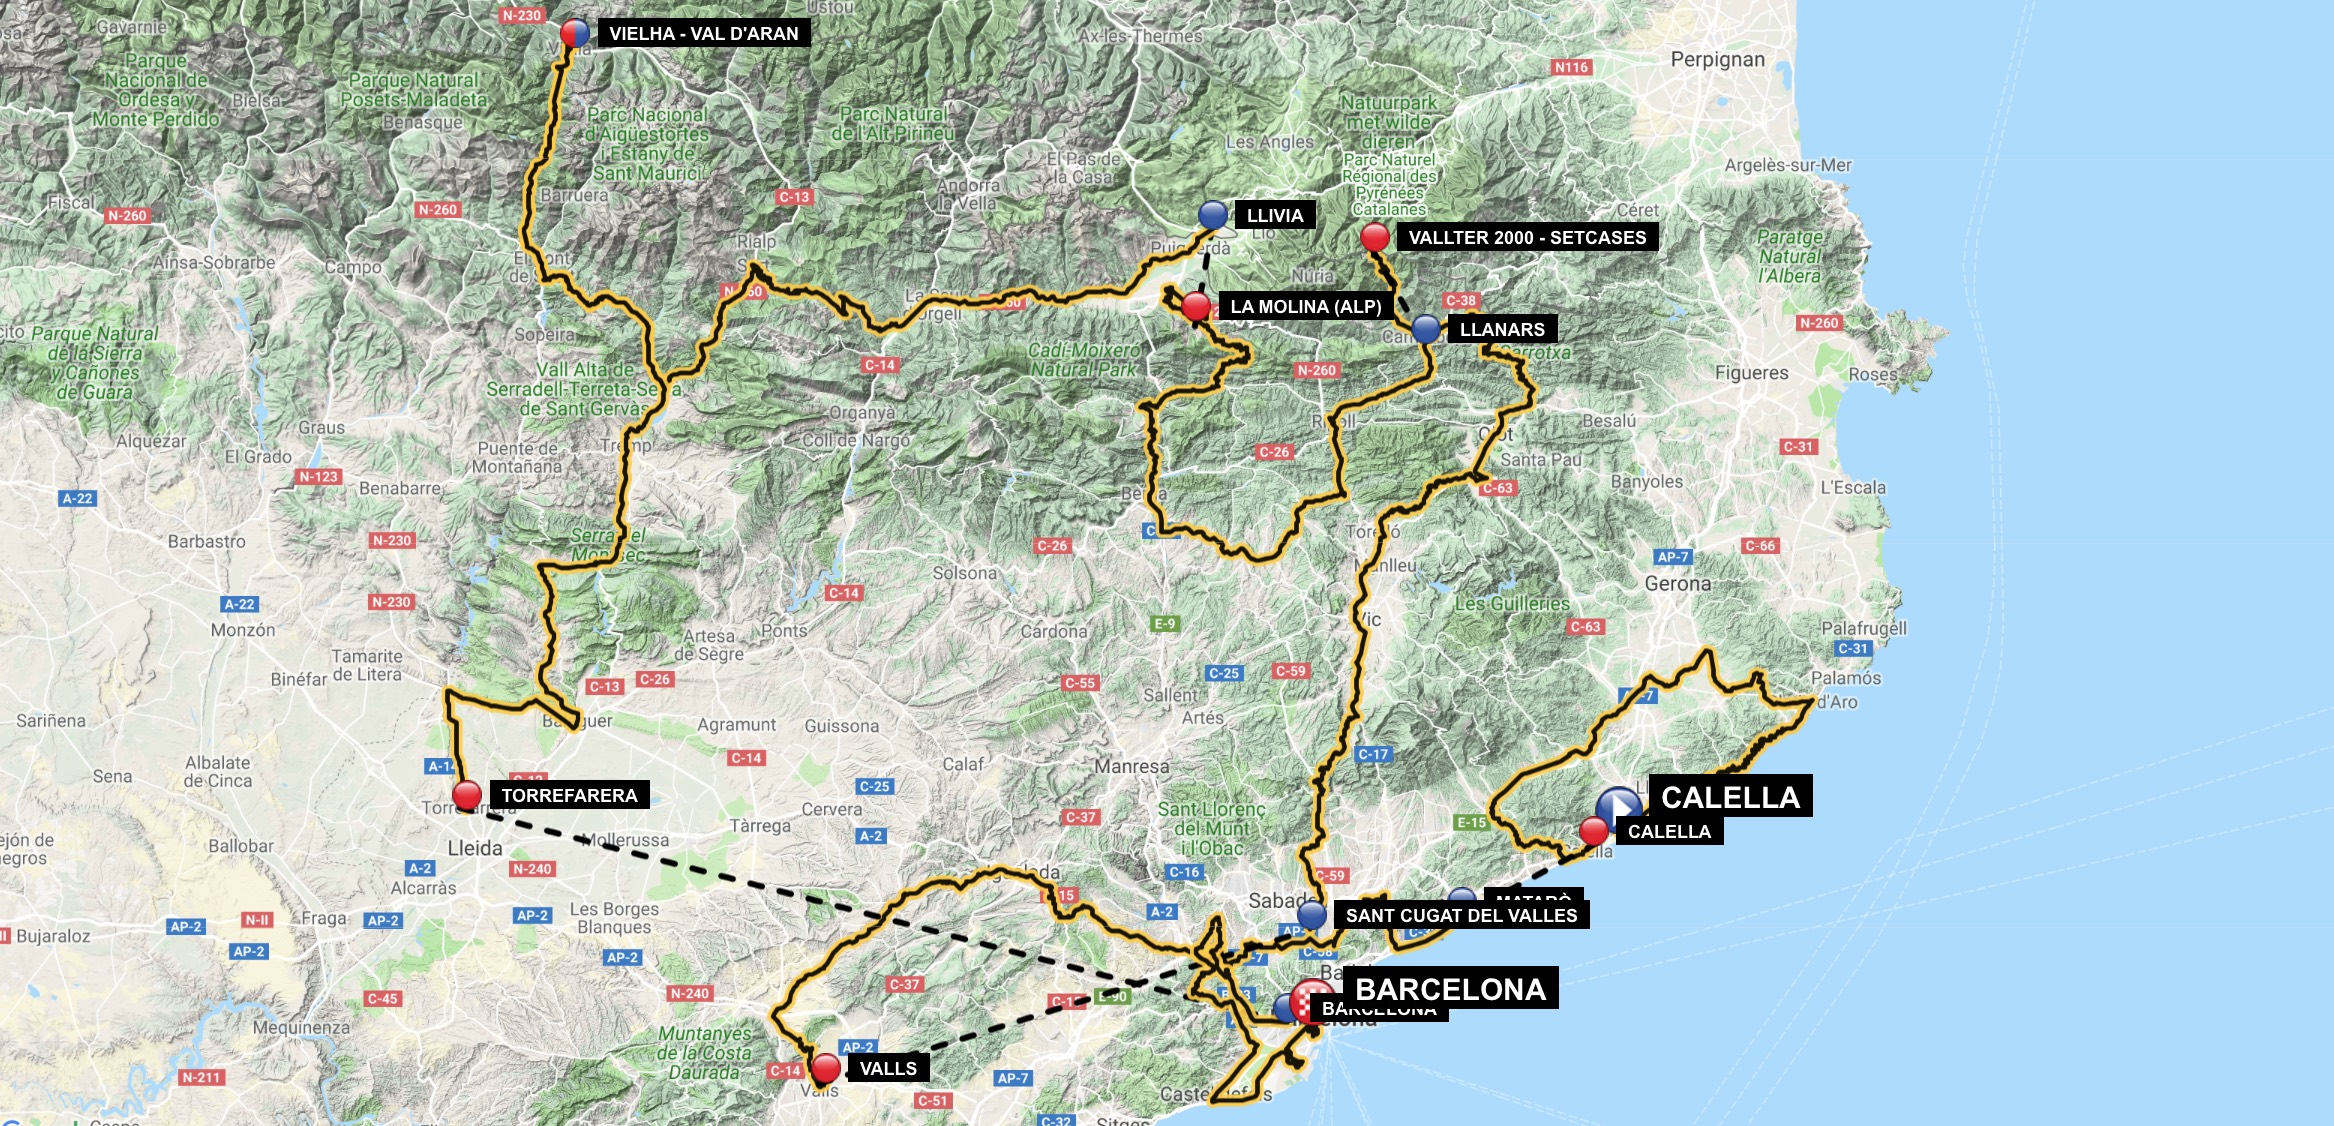 https://www.procyclingstats.com/images/profiles/ap/aa/volta-a-catalunya-2018-map-4c6721b89f.jpg